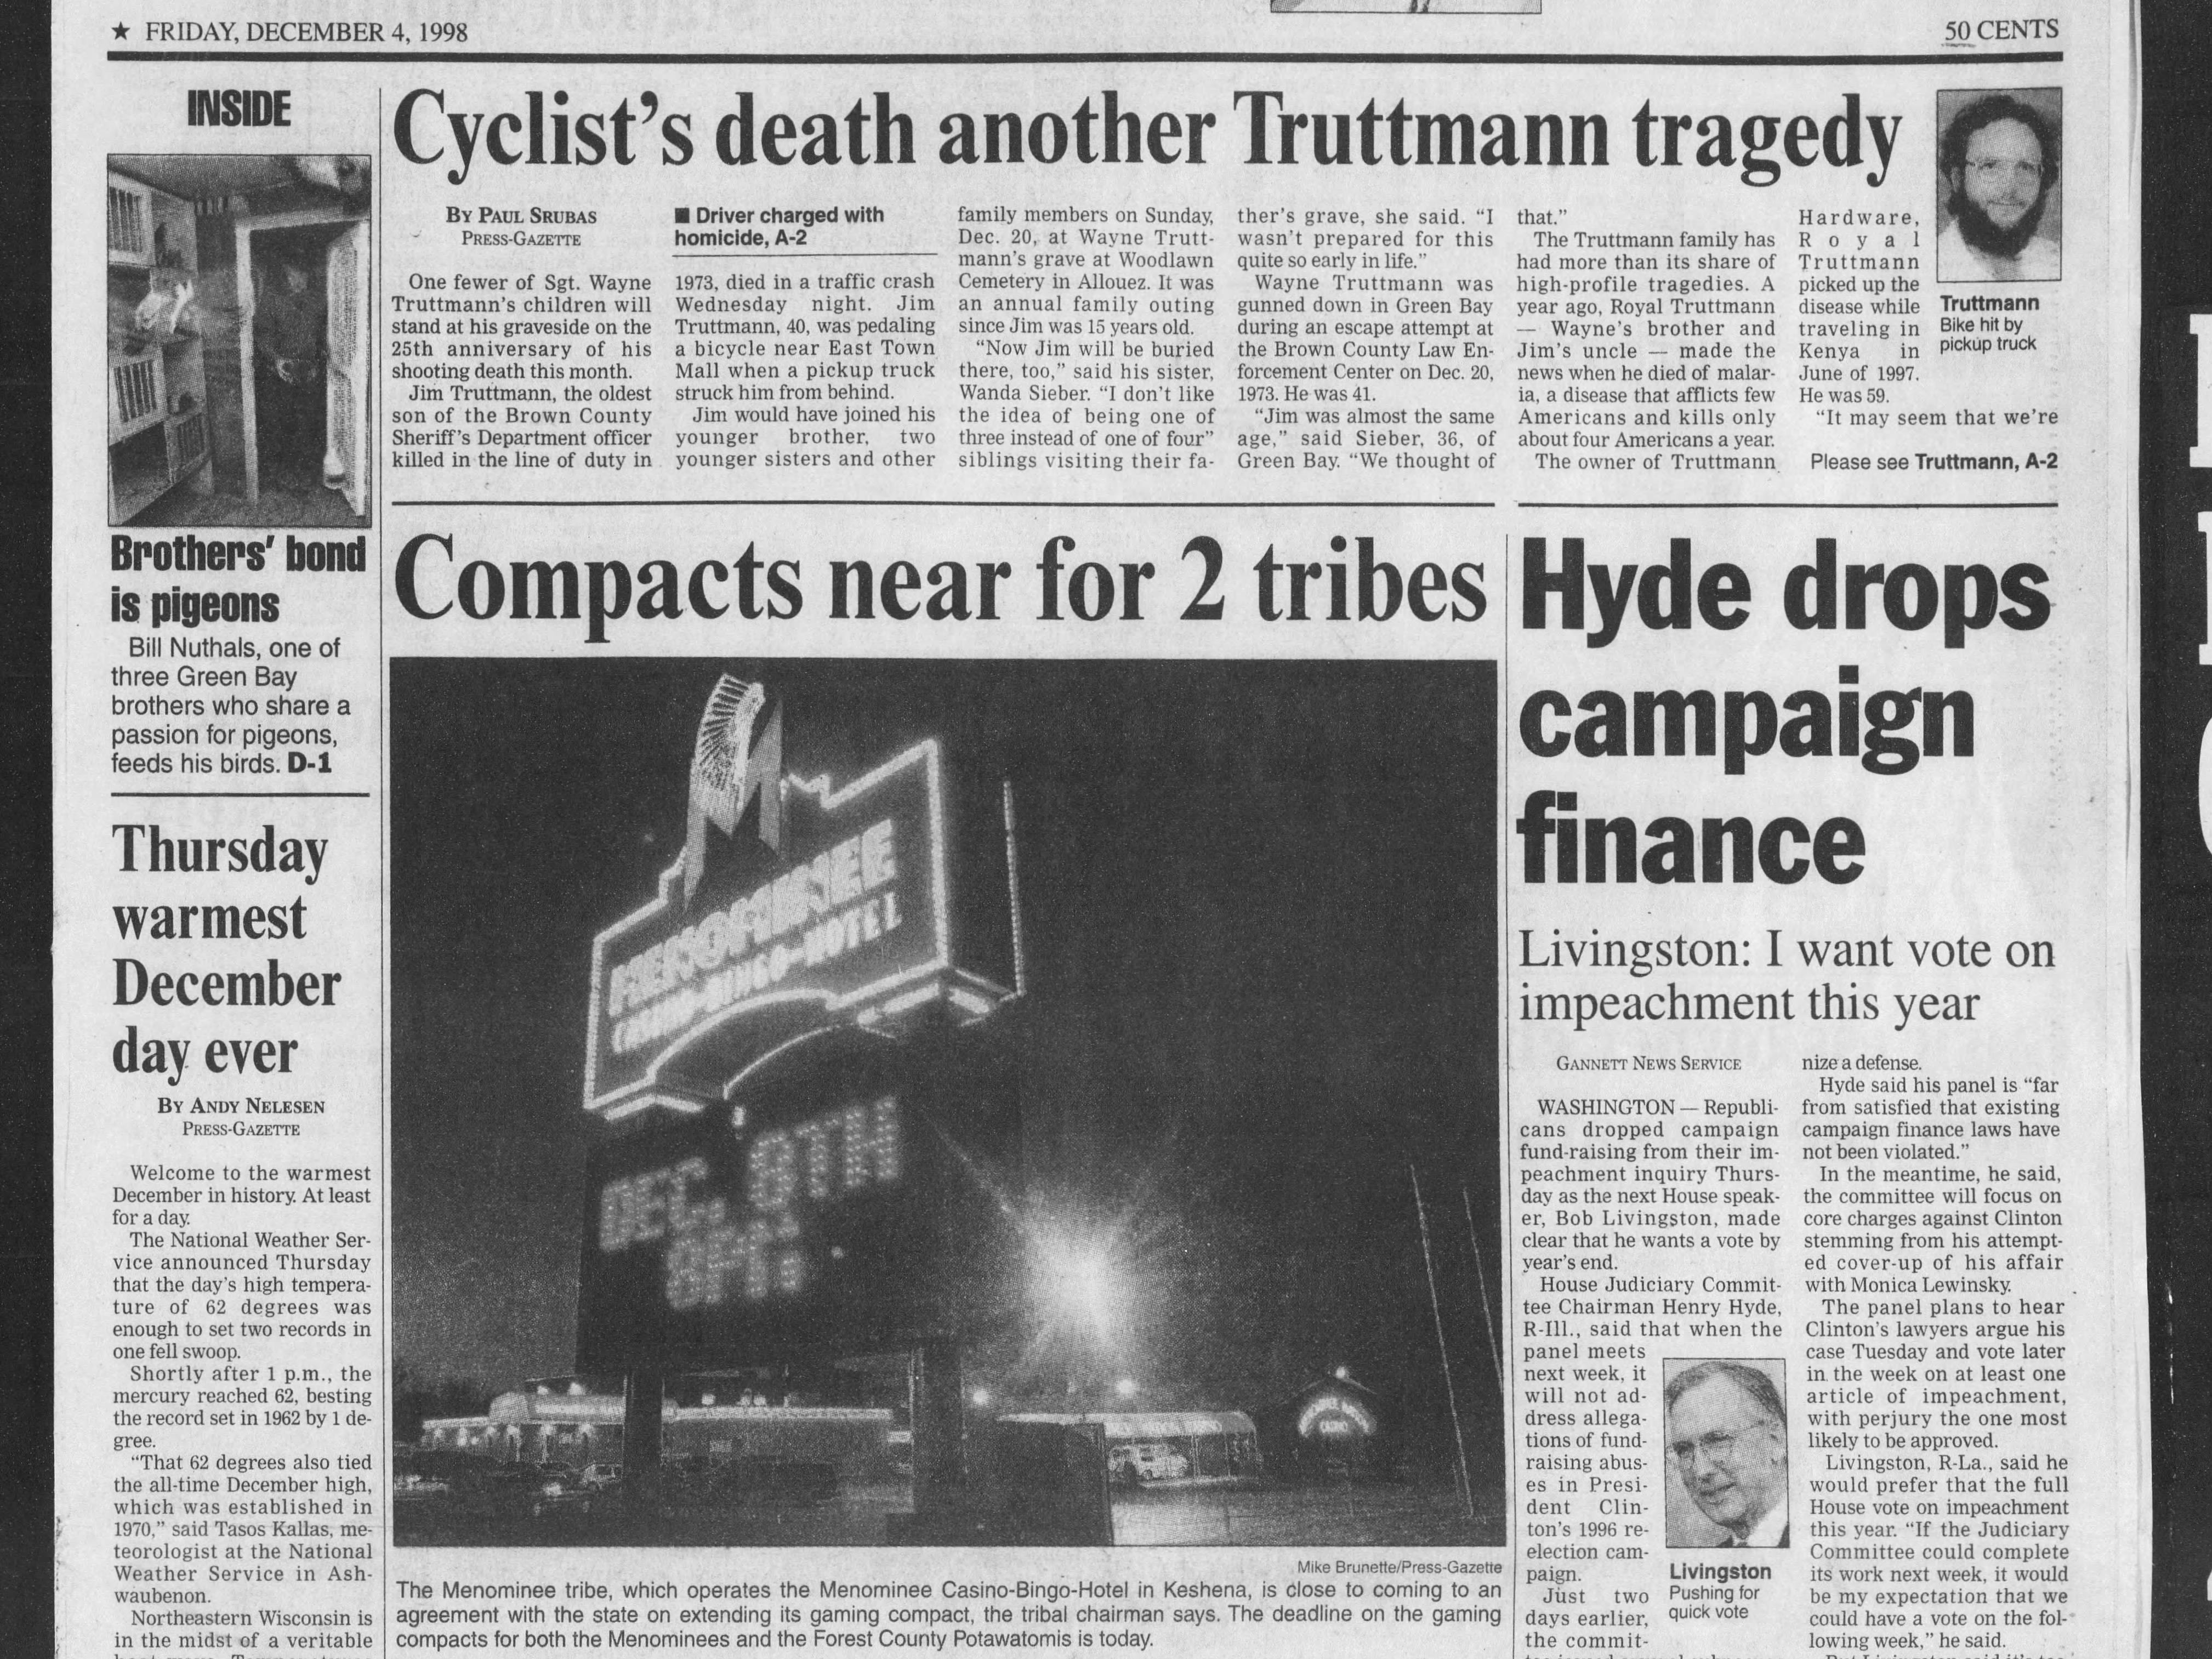 Today in History: Dec. 4, 1998